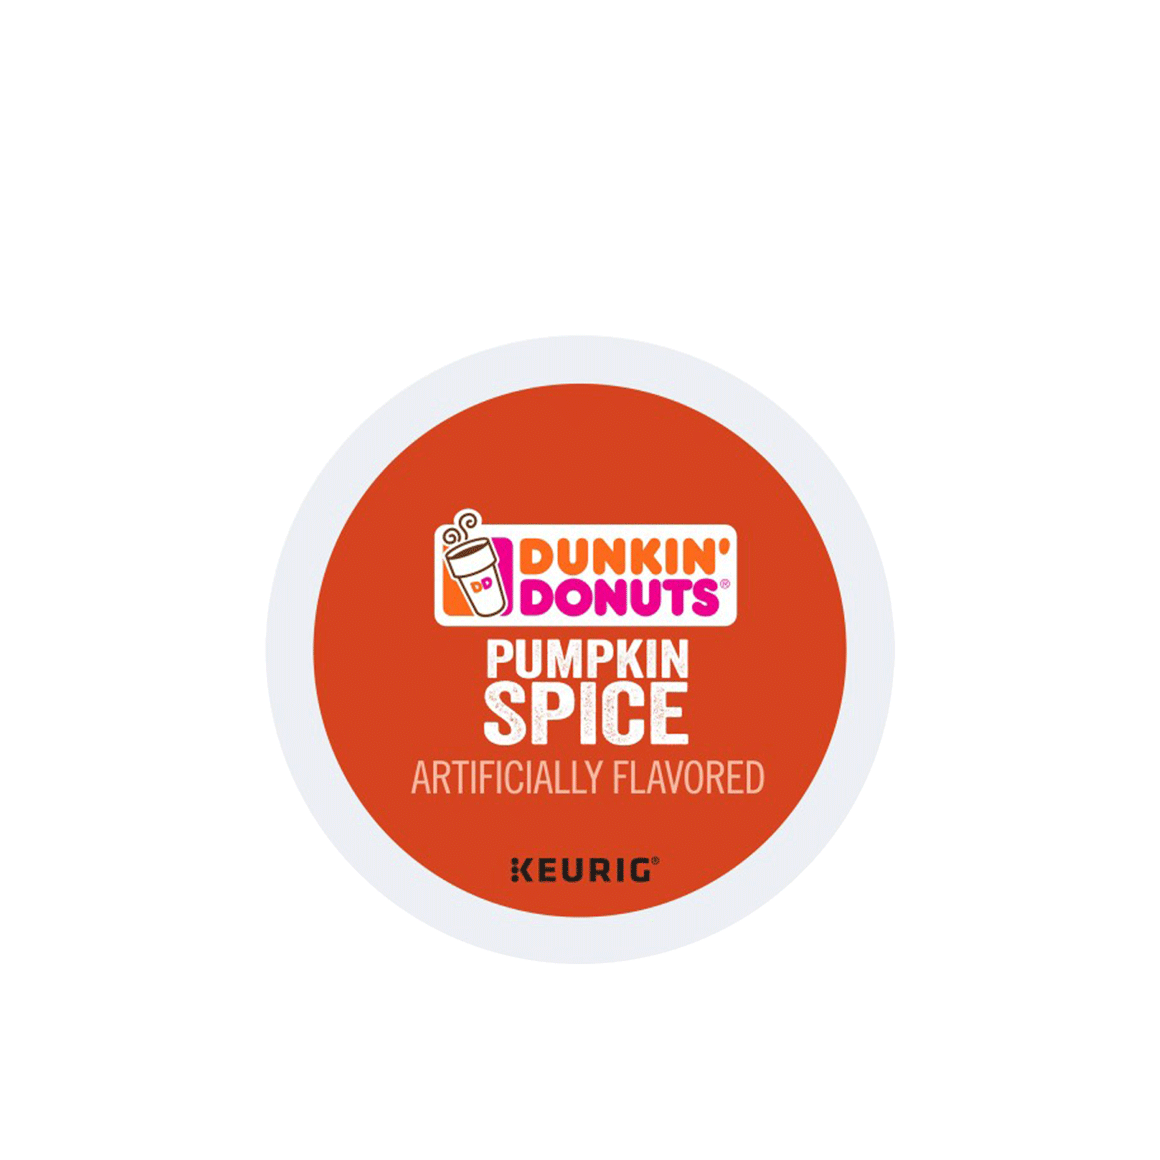 dunkin donuts k cup pumpkin spice coffee pod Image1